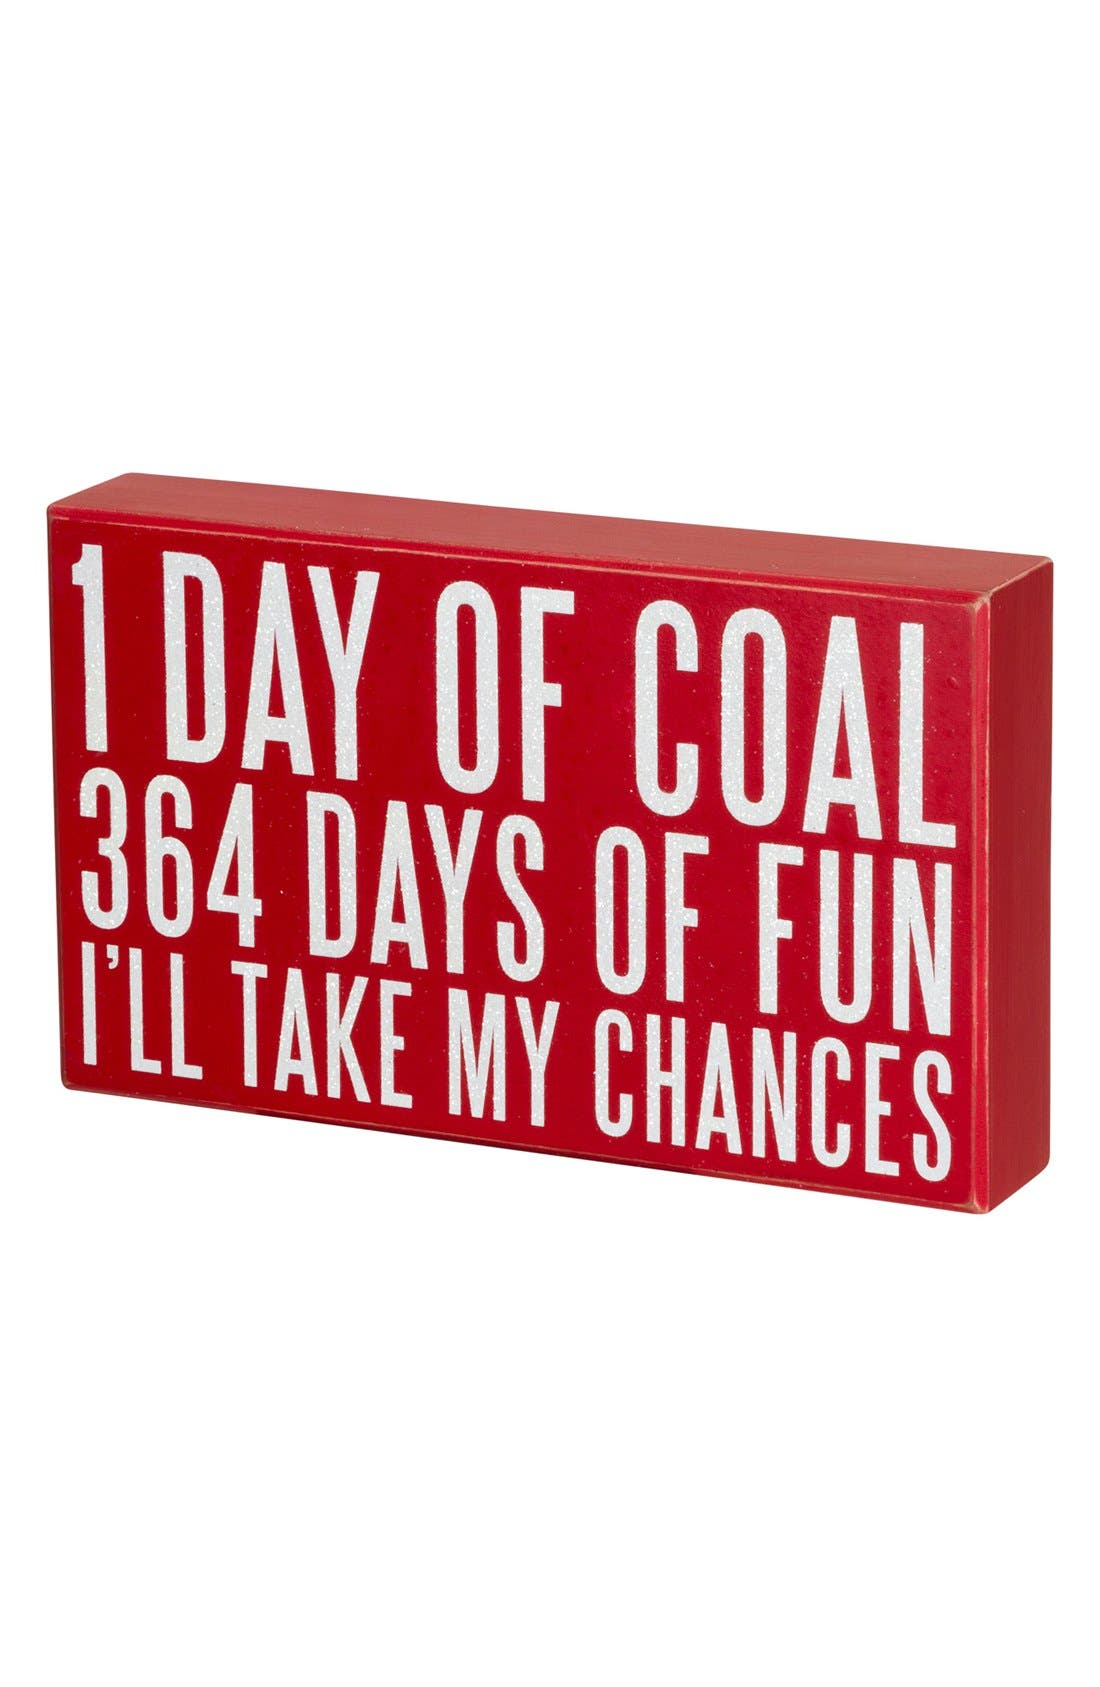 Primitives By Kathy 364 Days Of Fun Box Sign Nordstrom